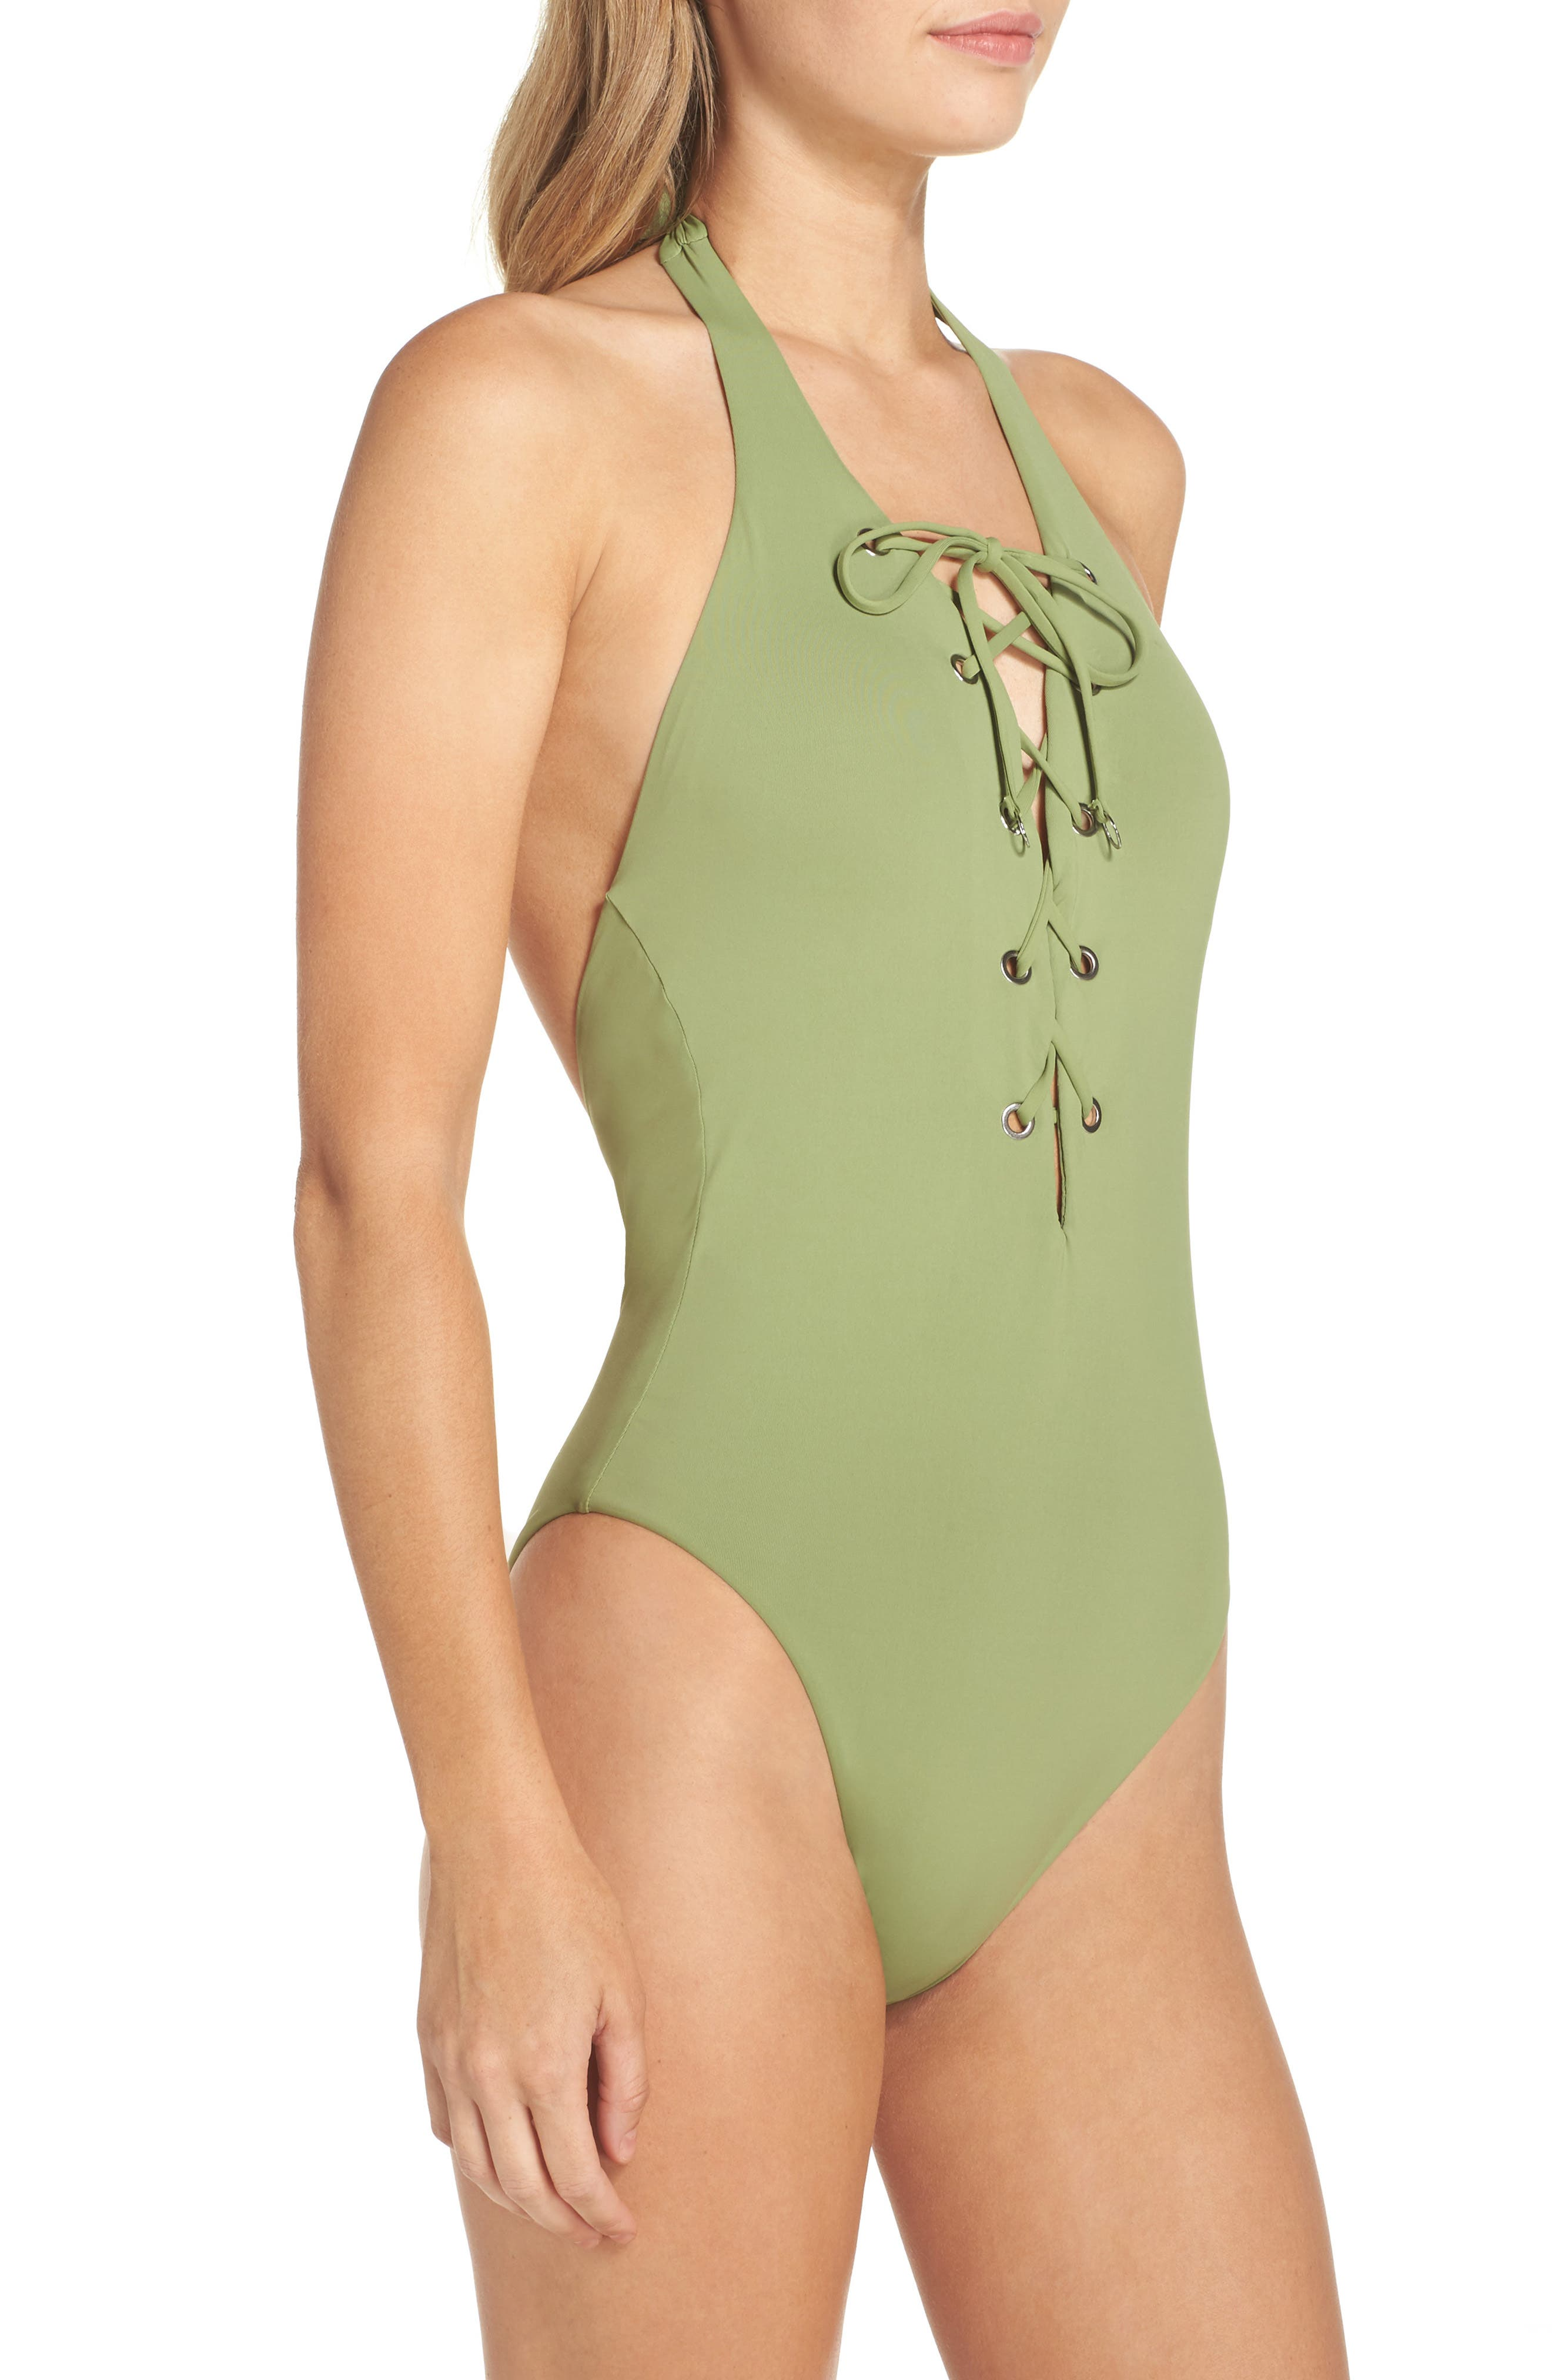 Lace-Up One-Piece Halter Swimsuit,                             Alternate thumbnail 3, color,                             Moss